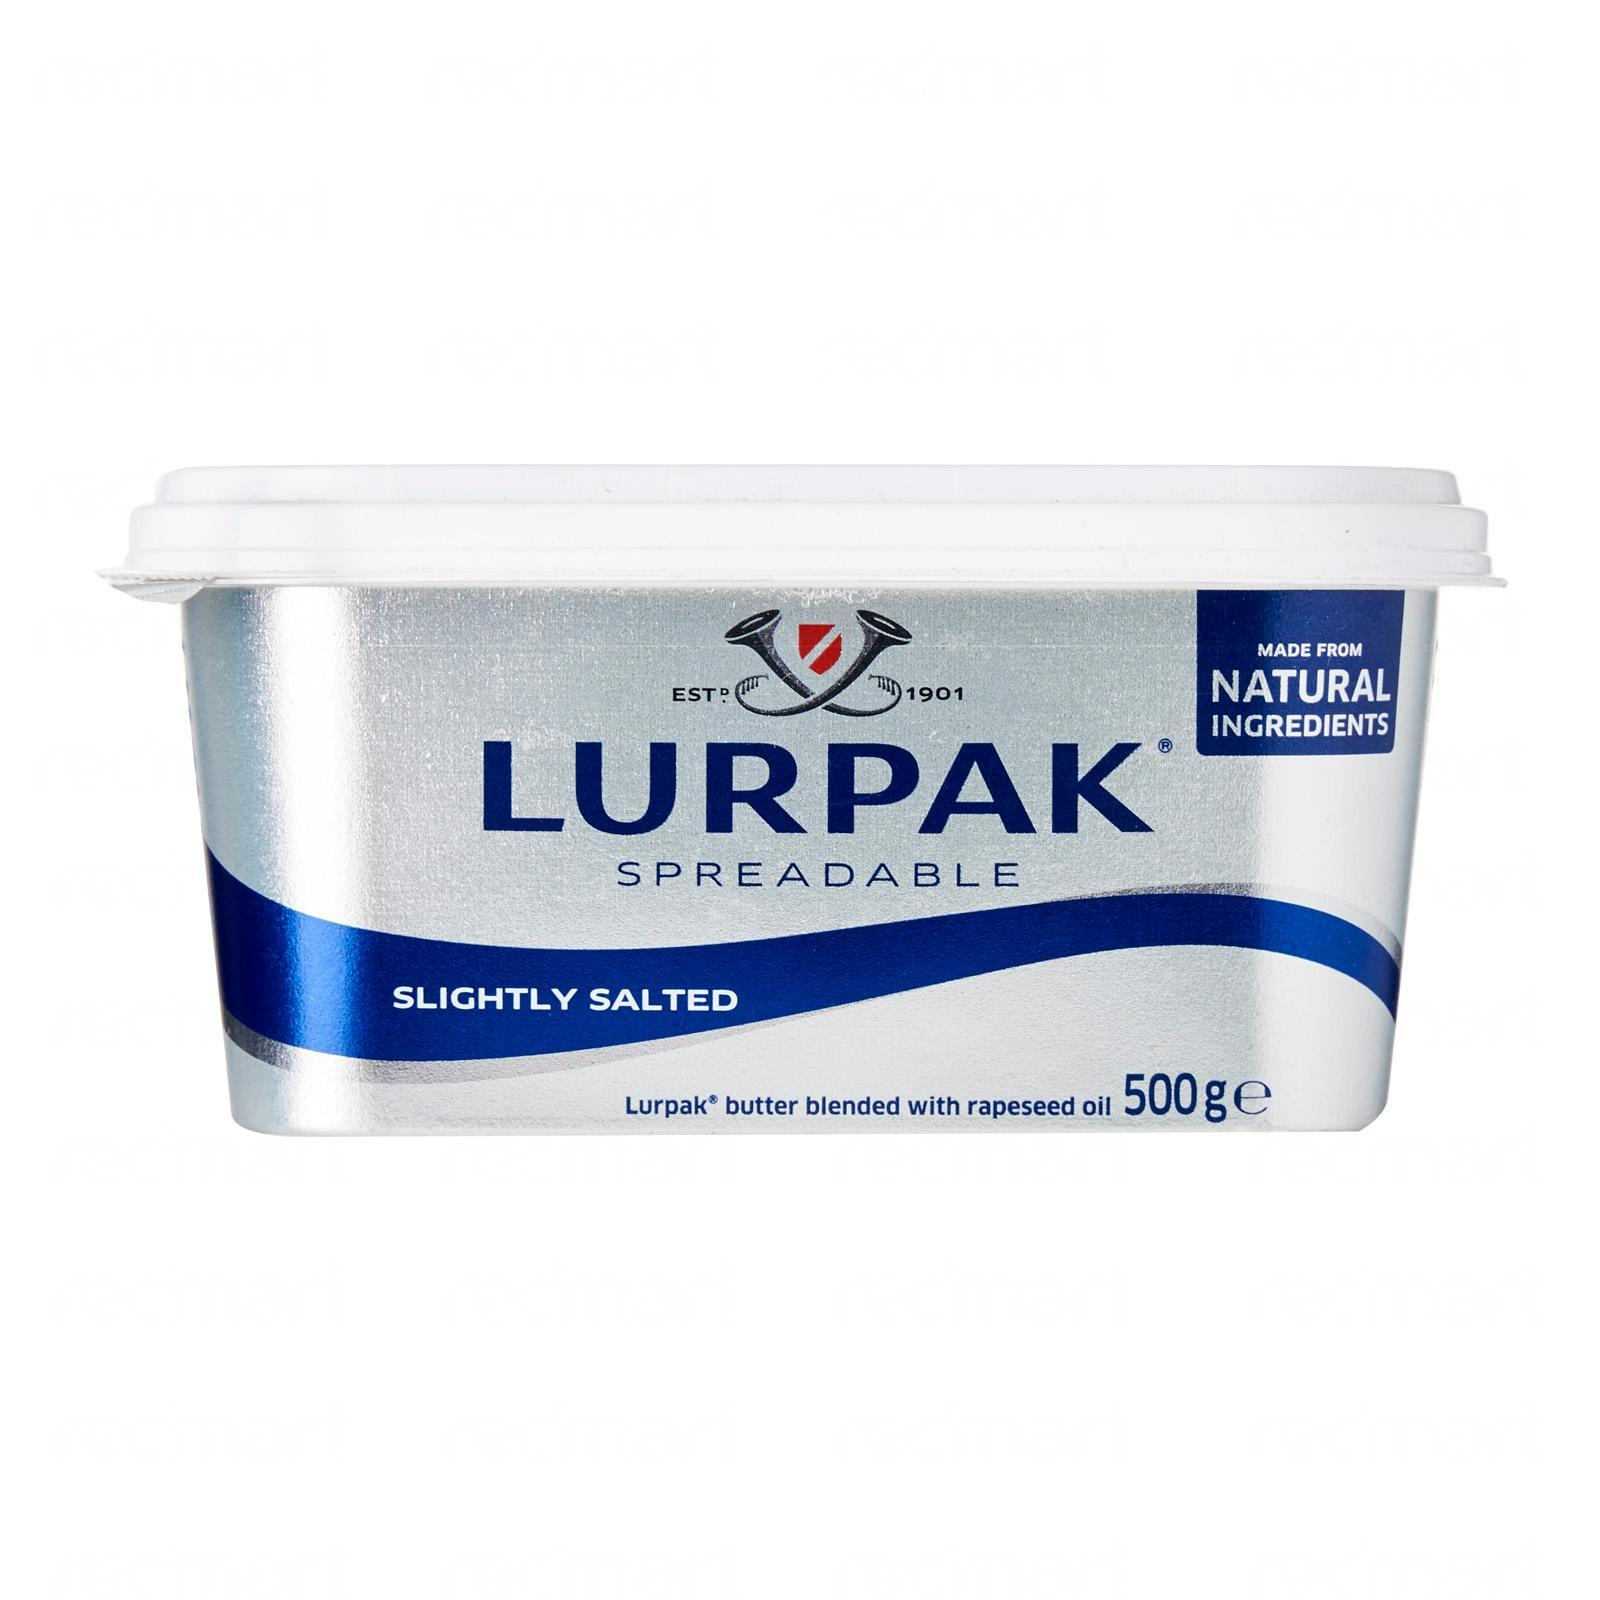 LURPAK Spreadable Butter Slightly Salted 500g